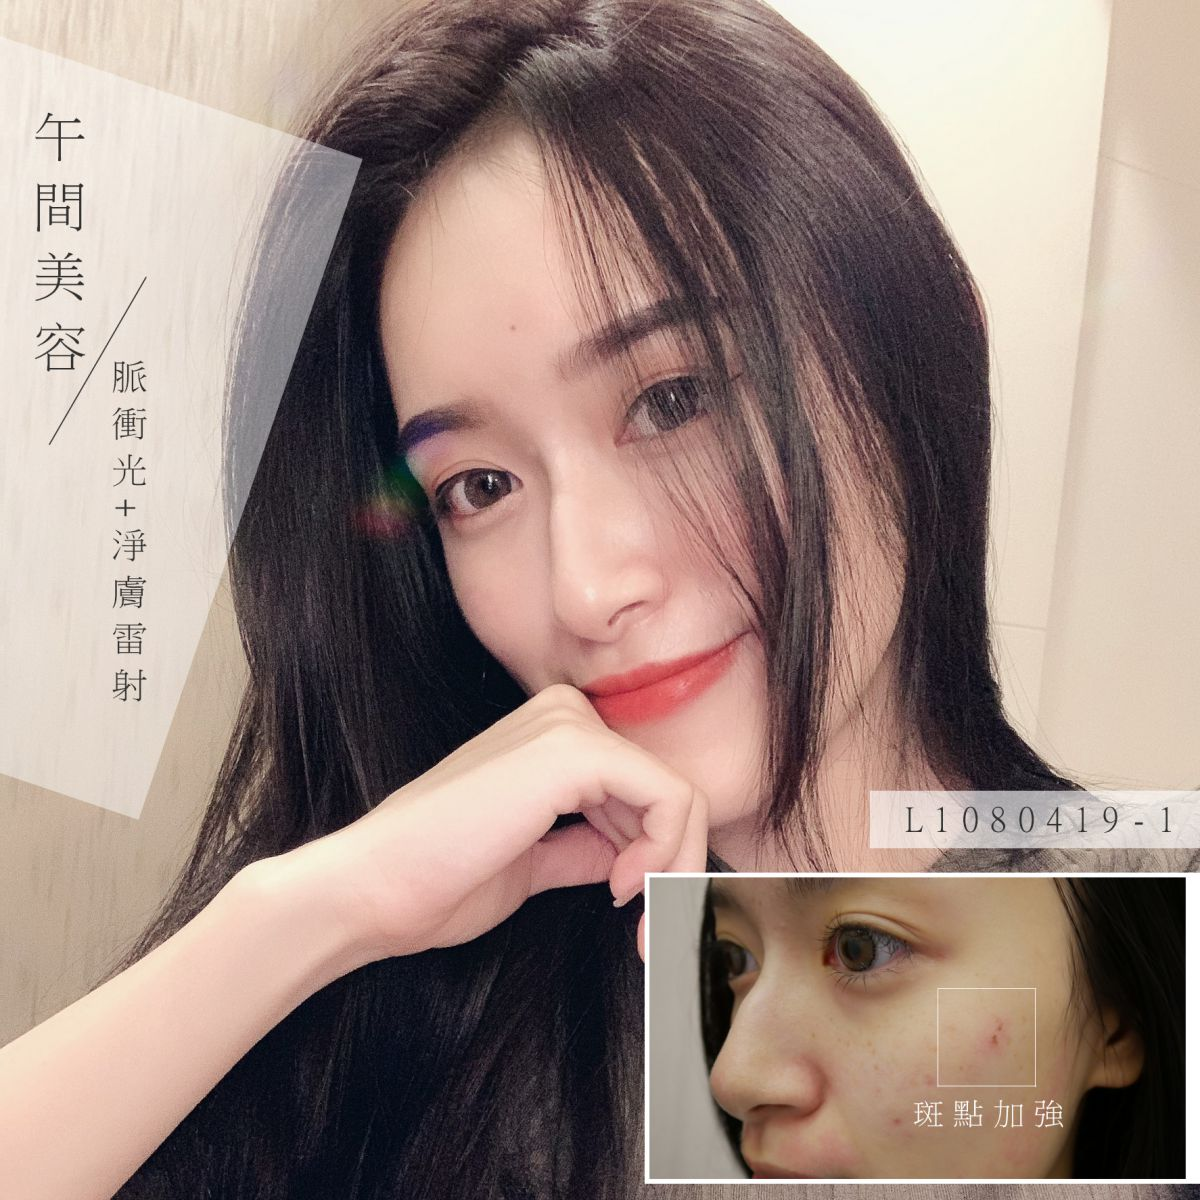 Read more about the article 午間美容!脈衝光+淨膚雷射